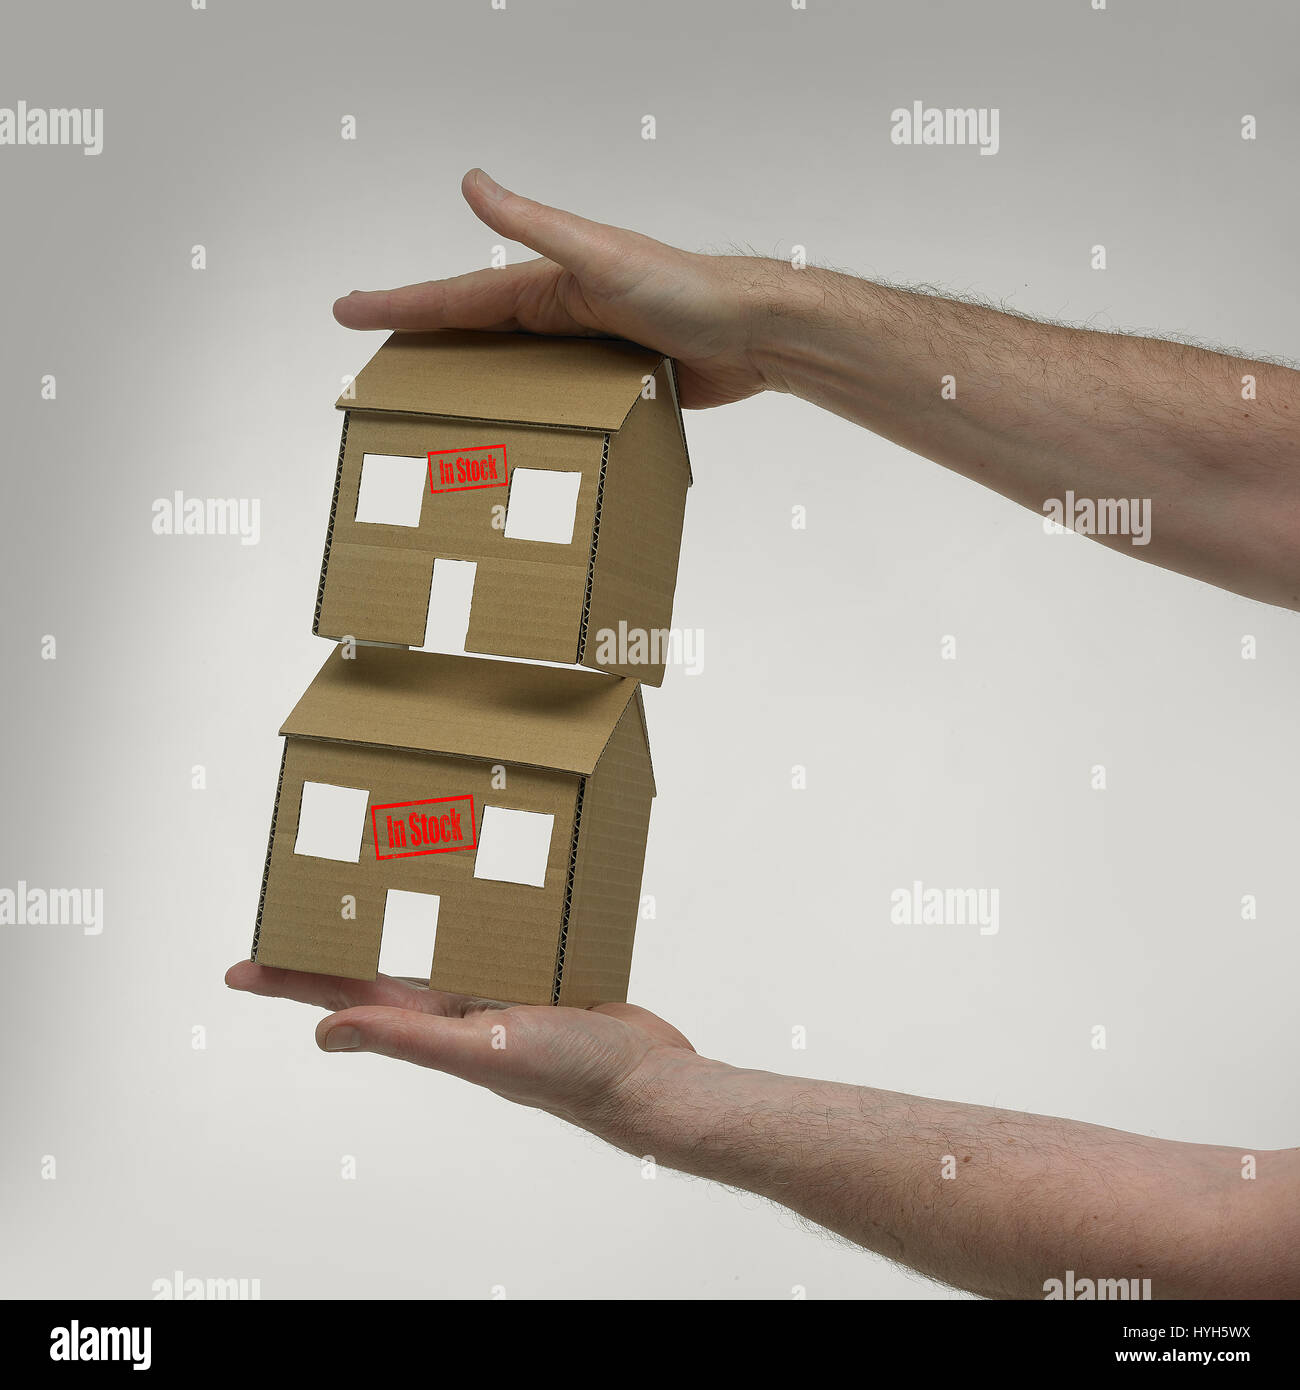 Two Cardboard Houses with an 'in stock' stamp. Stock Photo